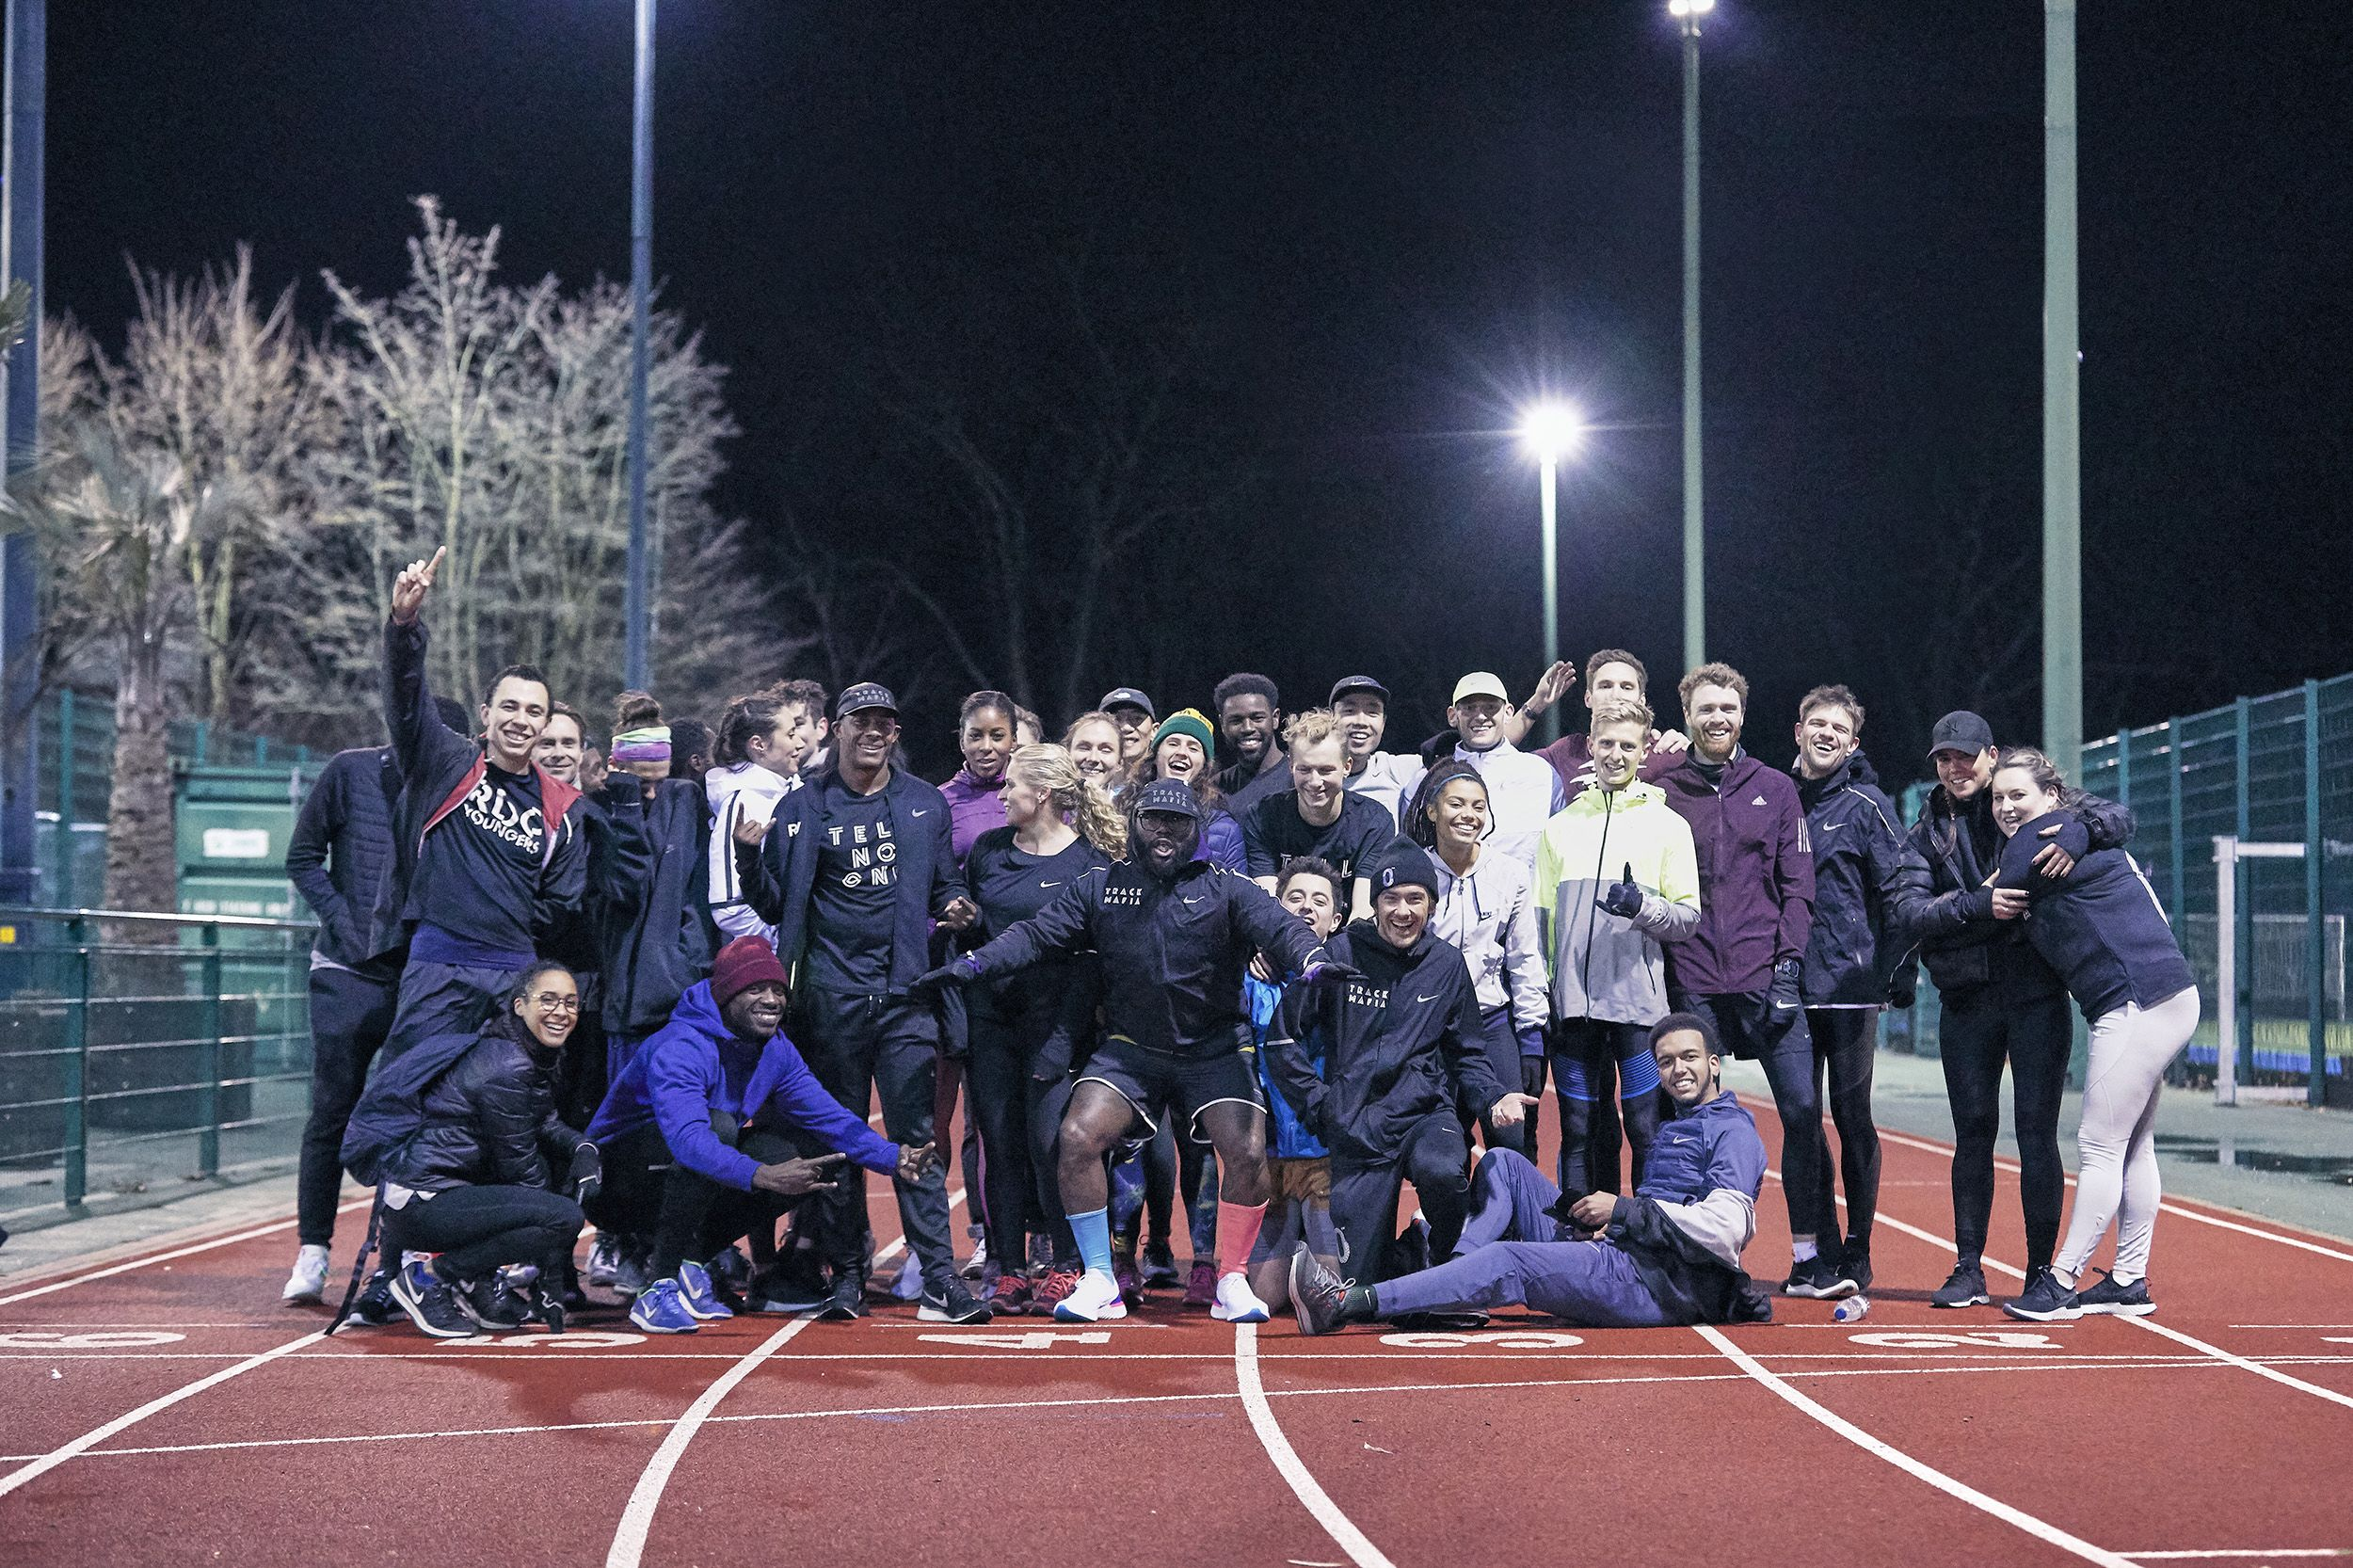 A new breed of running crews and clubs are taking social media by storm